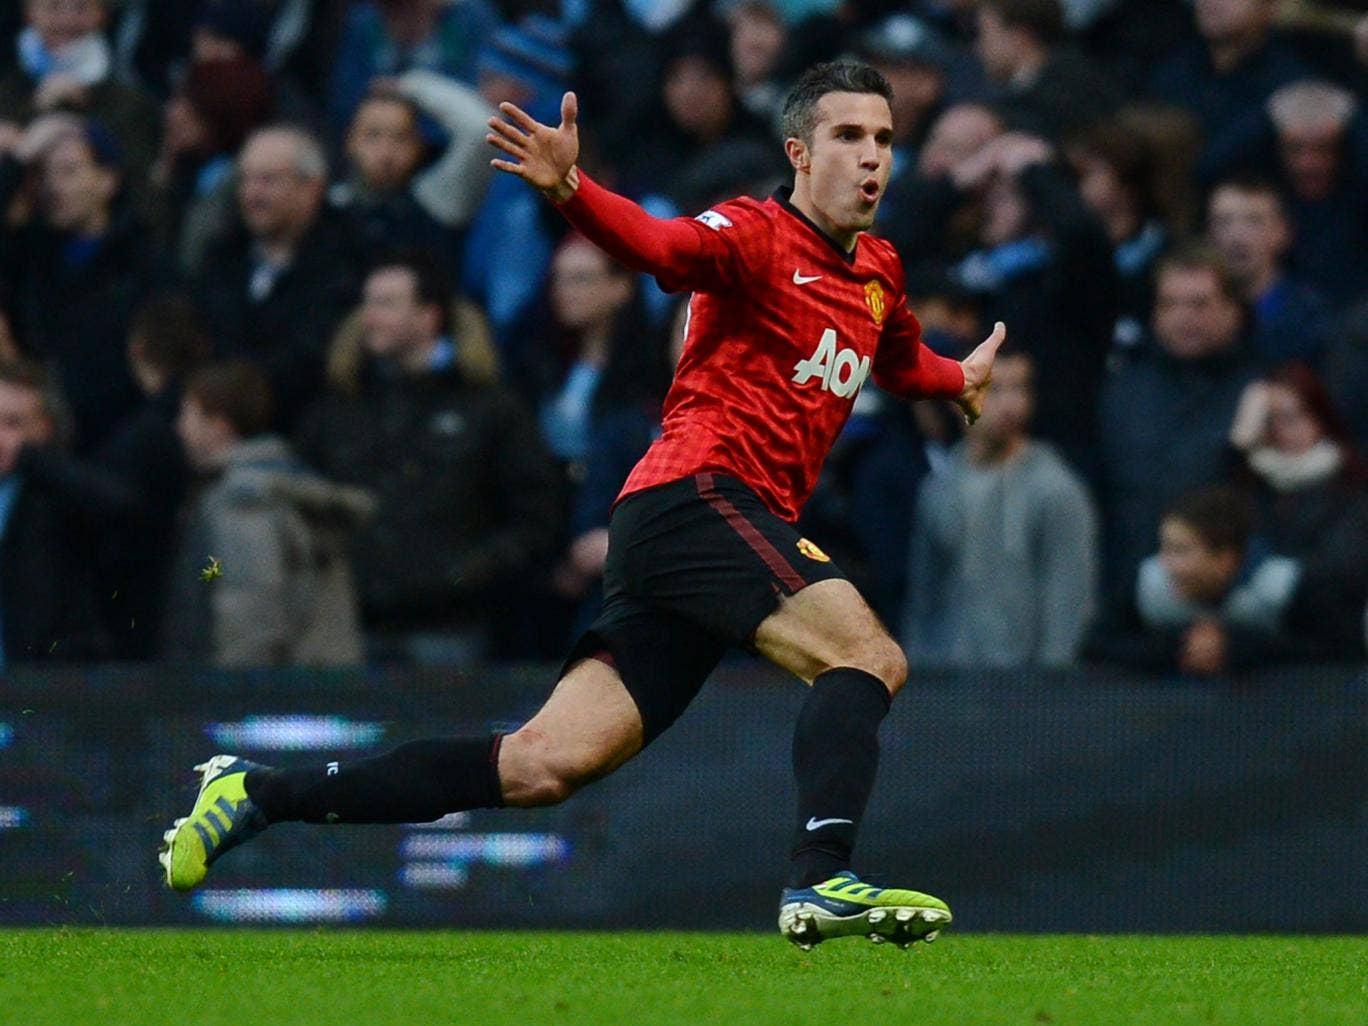 Manchester United's Dutch striker Robin Van Persie celebrates scoring his late winning goal